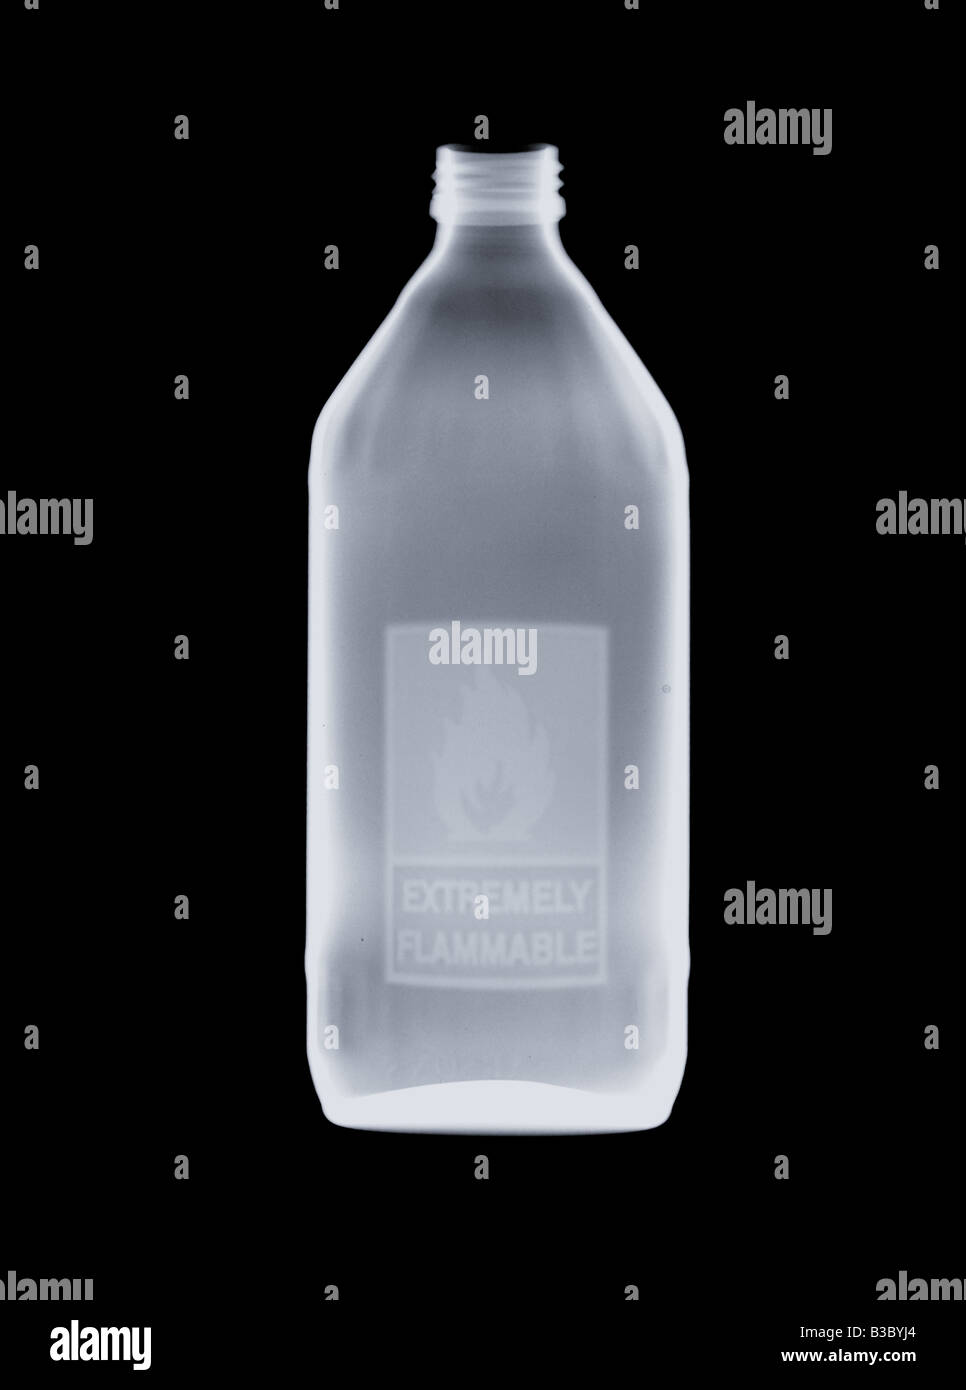 X-ray of a bottle of flammable liquid - Stock Image